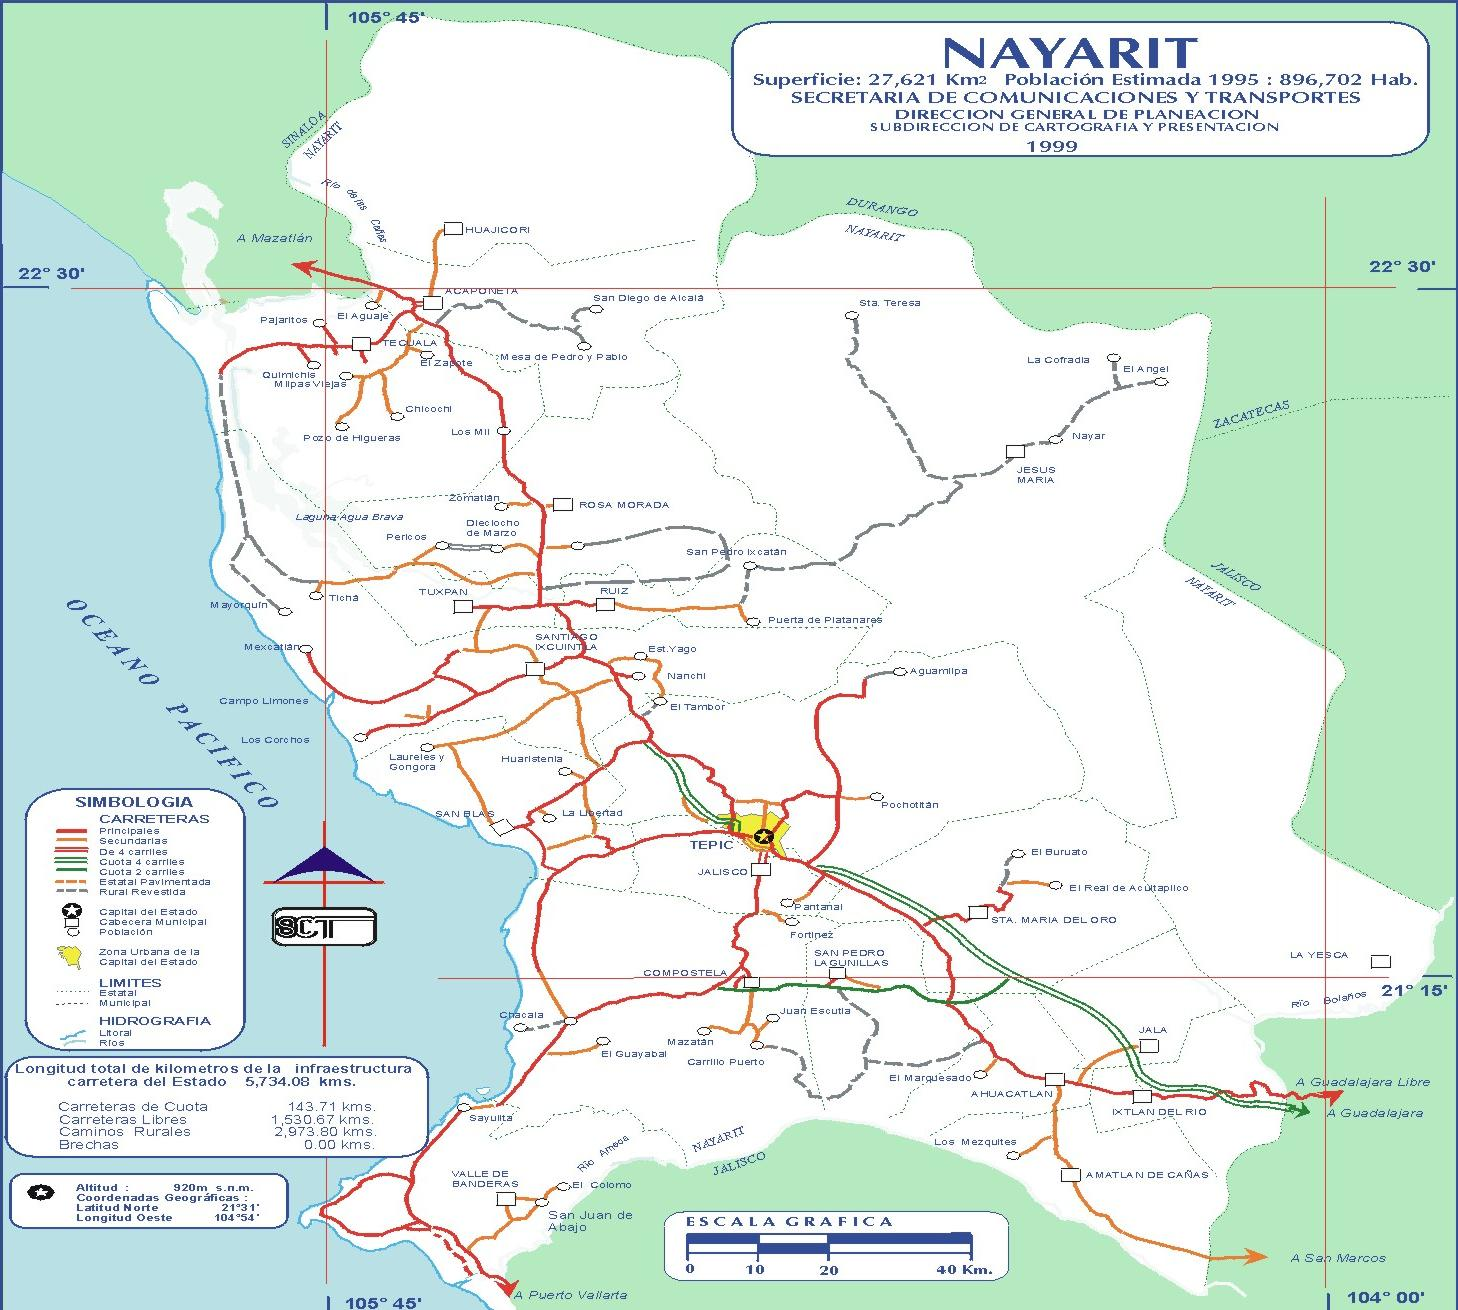 Map of Nayarit 1999